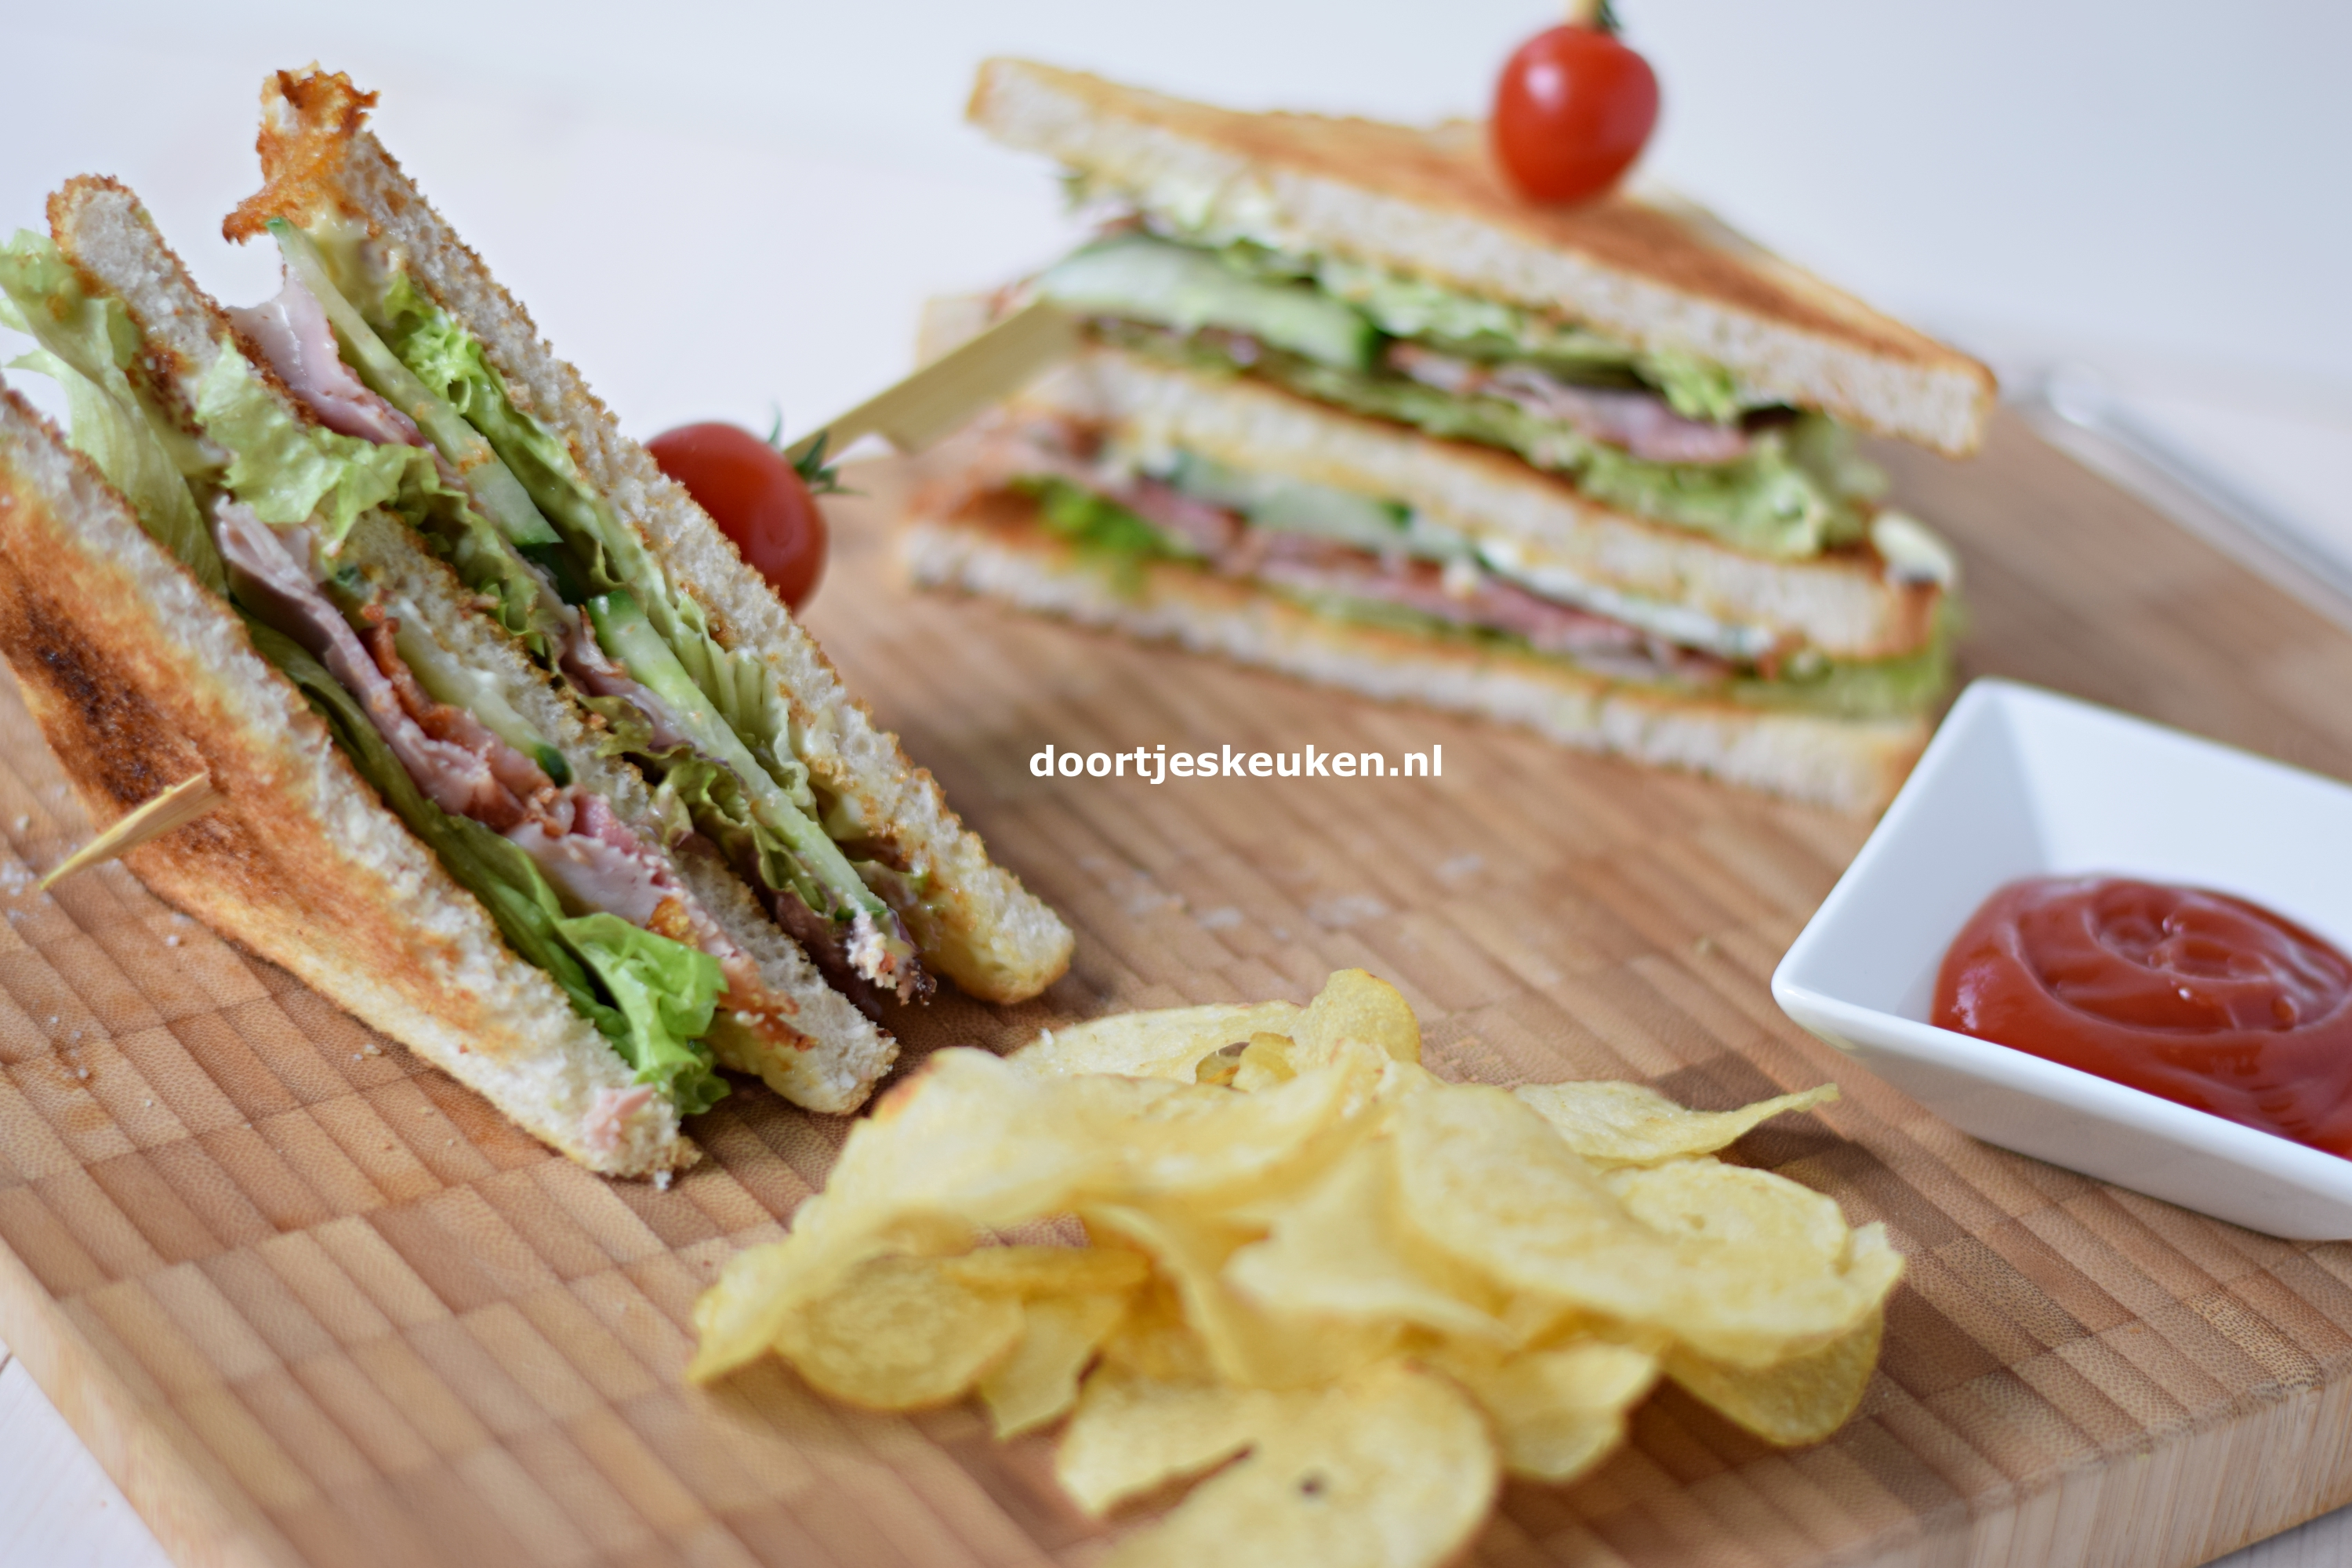 Clubsandwich met bacon